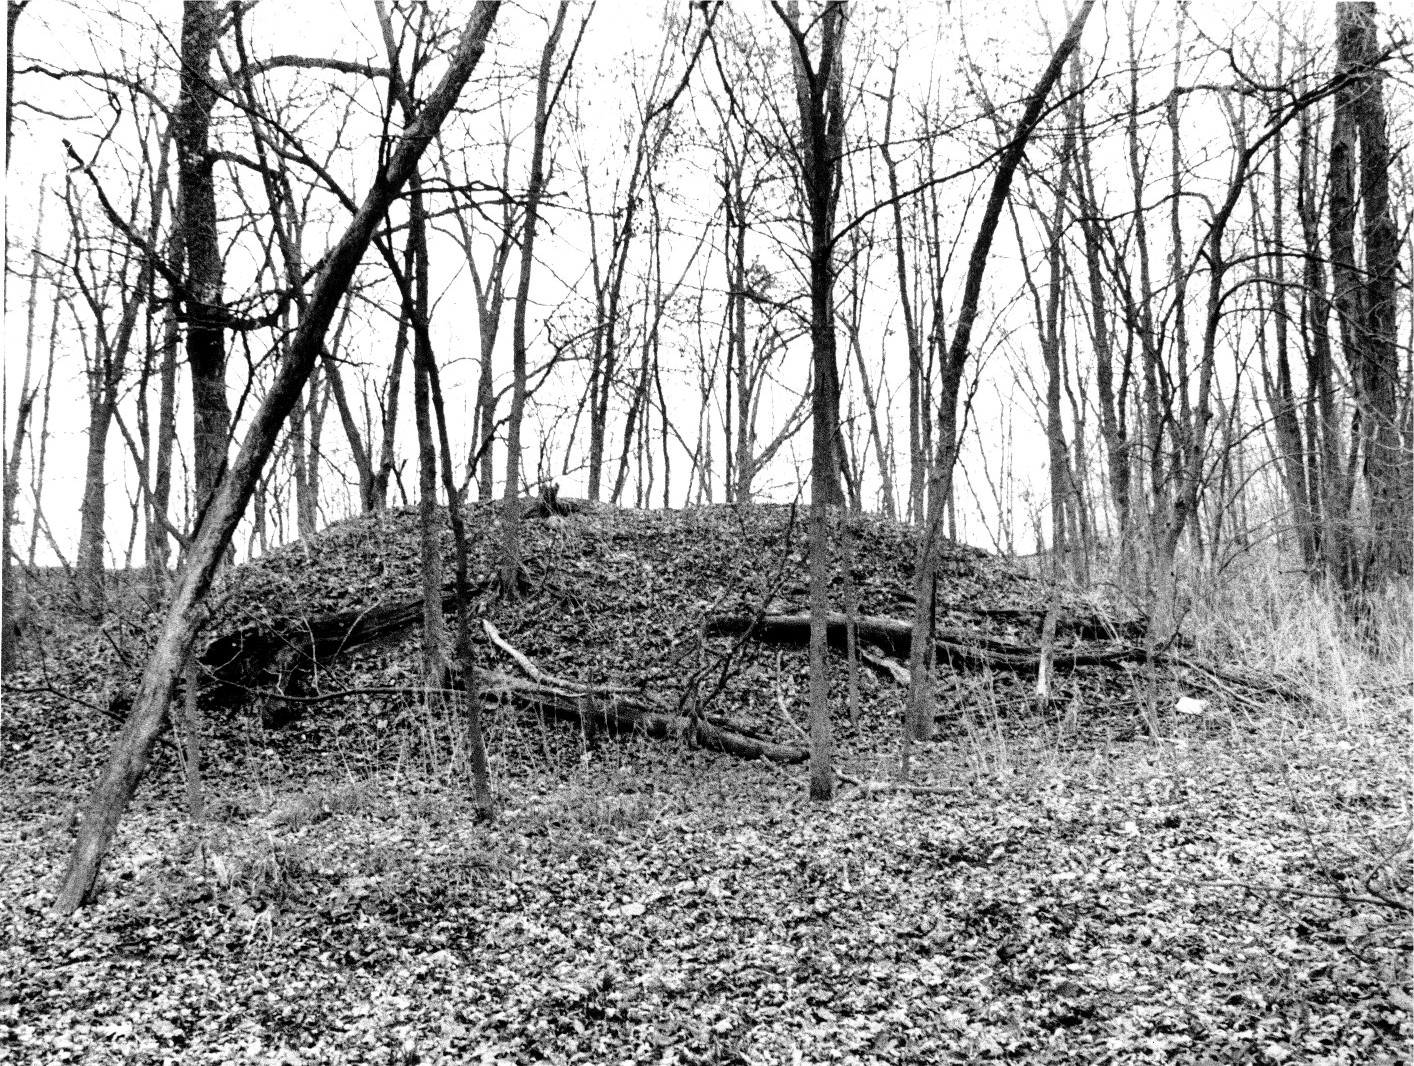 Maumee Indians http://thenephilimchronicles.blogspot.com/2011/08/early-native-american-burial-mounds-and_5472.html